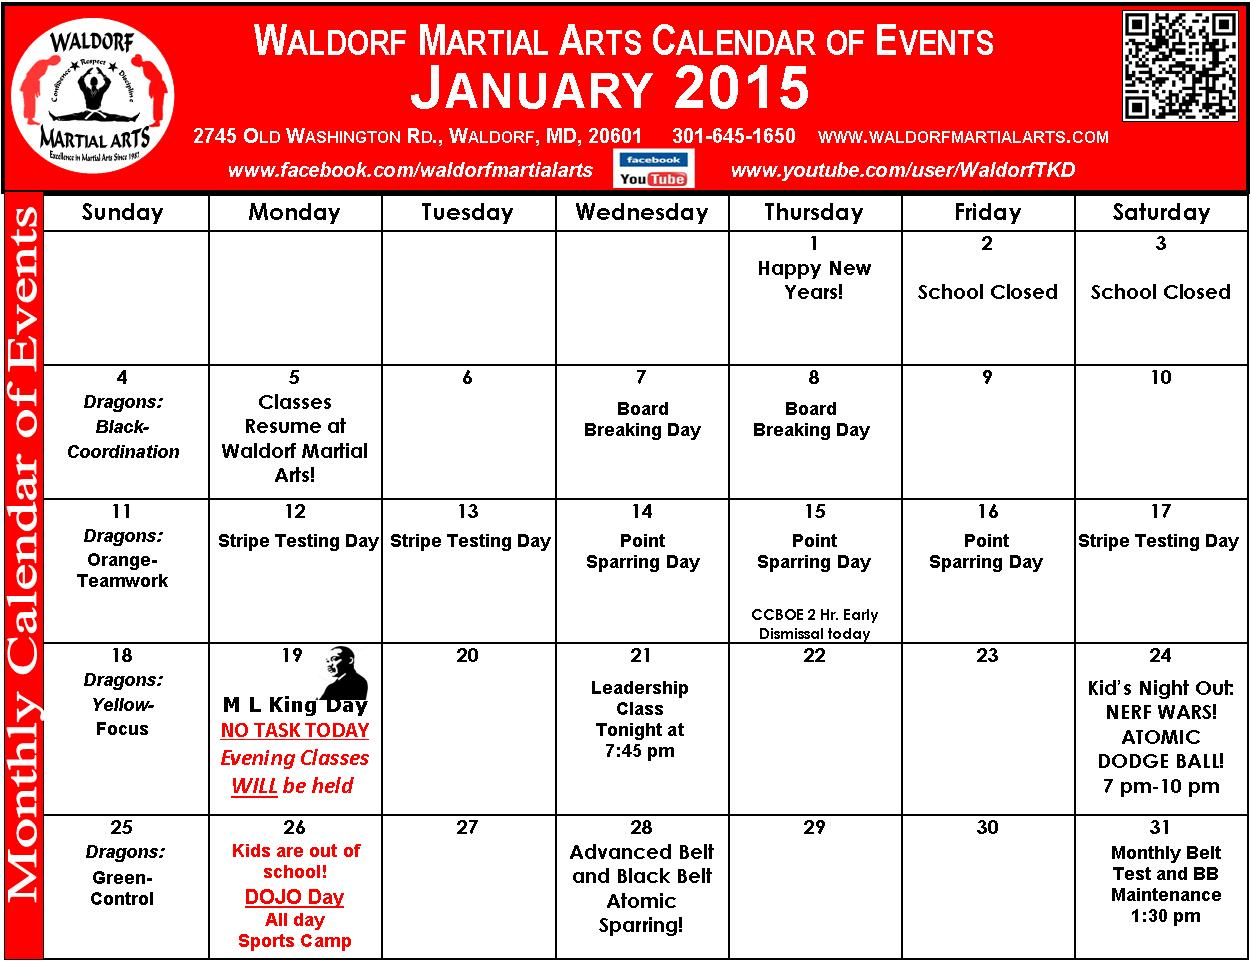 January 2015 Calendar of Events